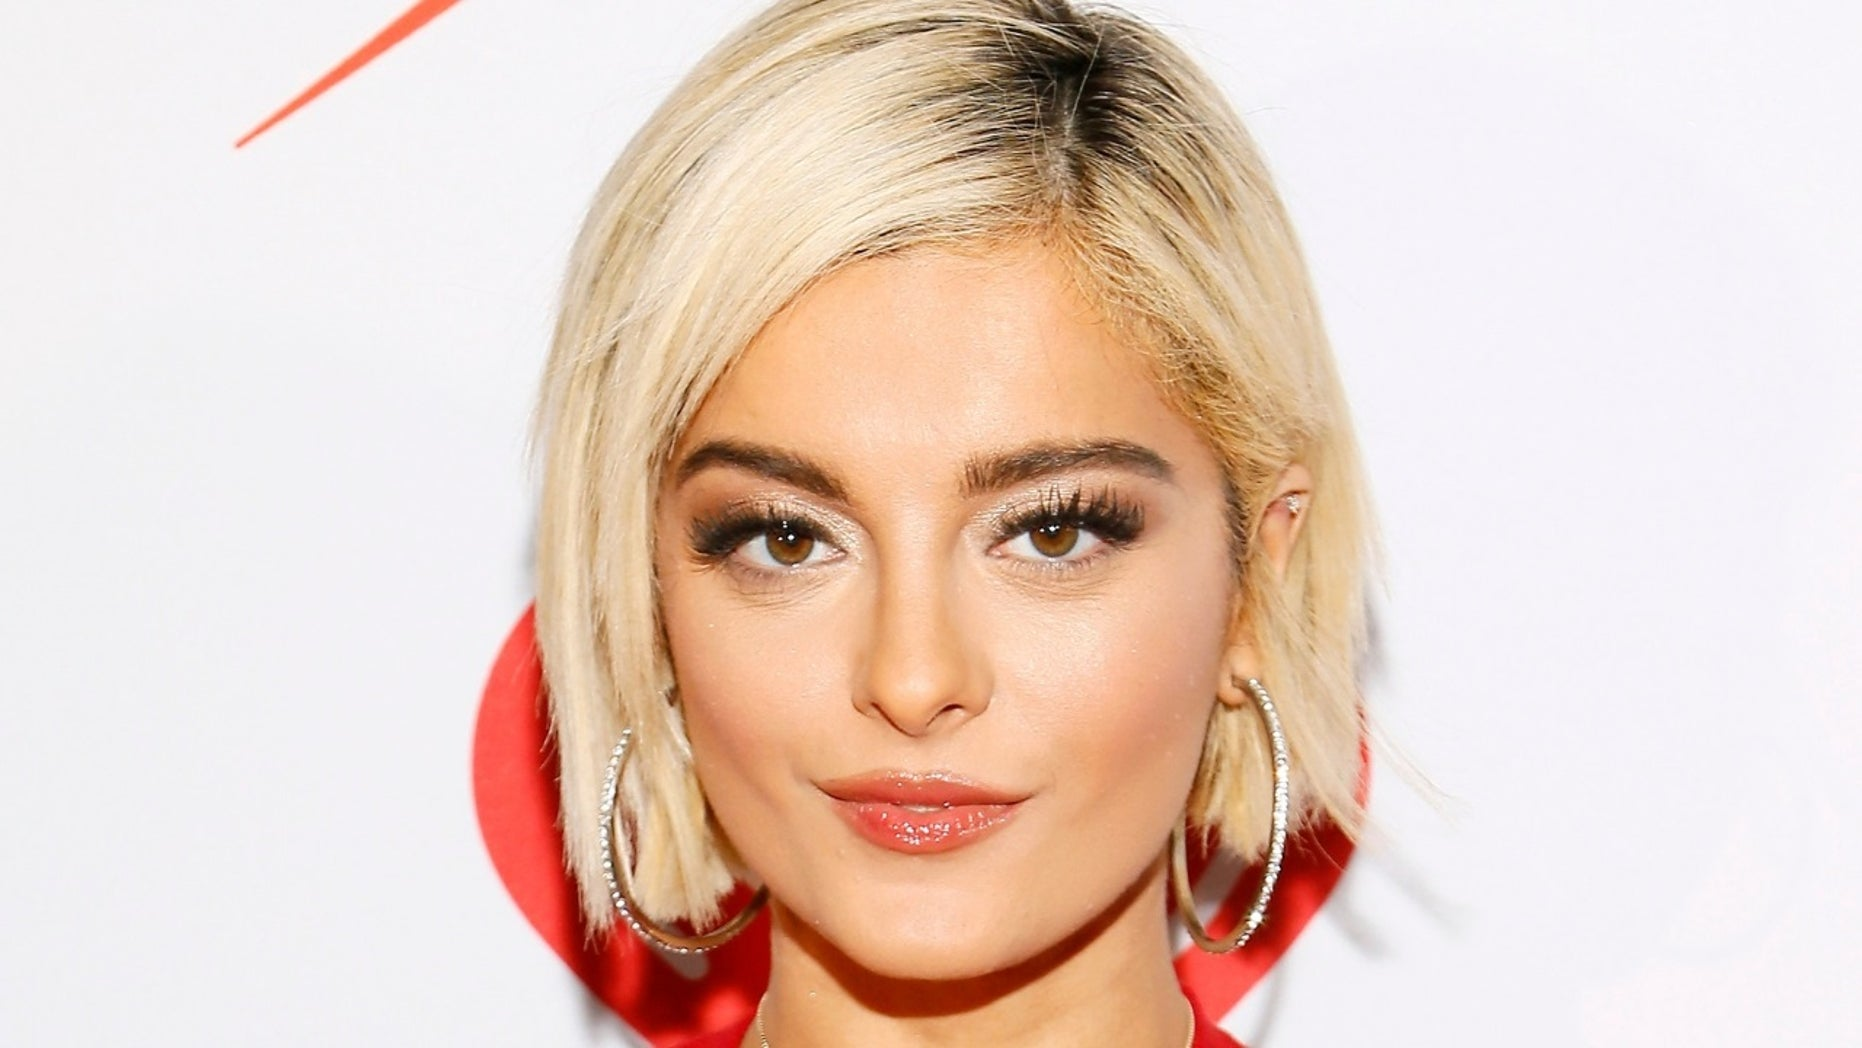 Bebe Rexha Call Out NFL Star For Texting Her Inappropriately